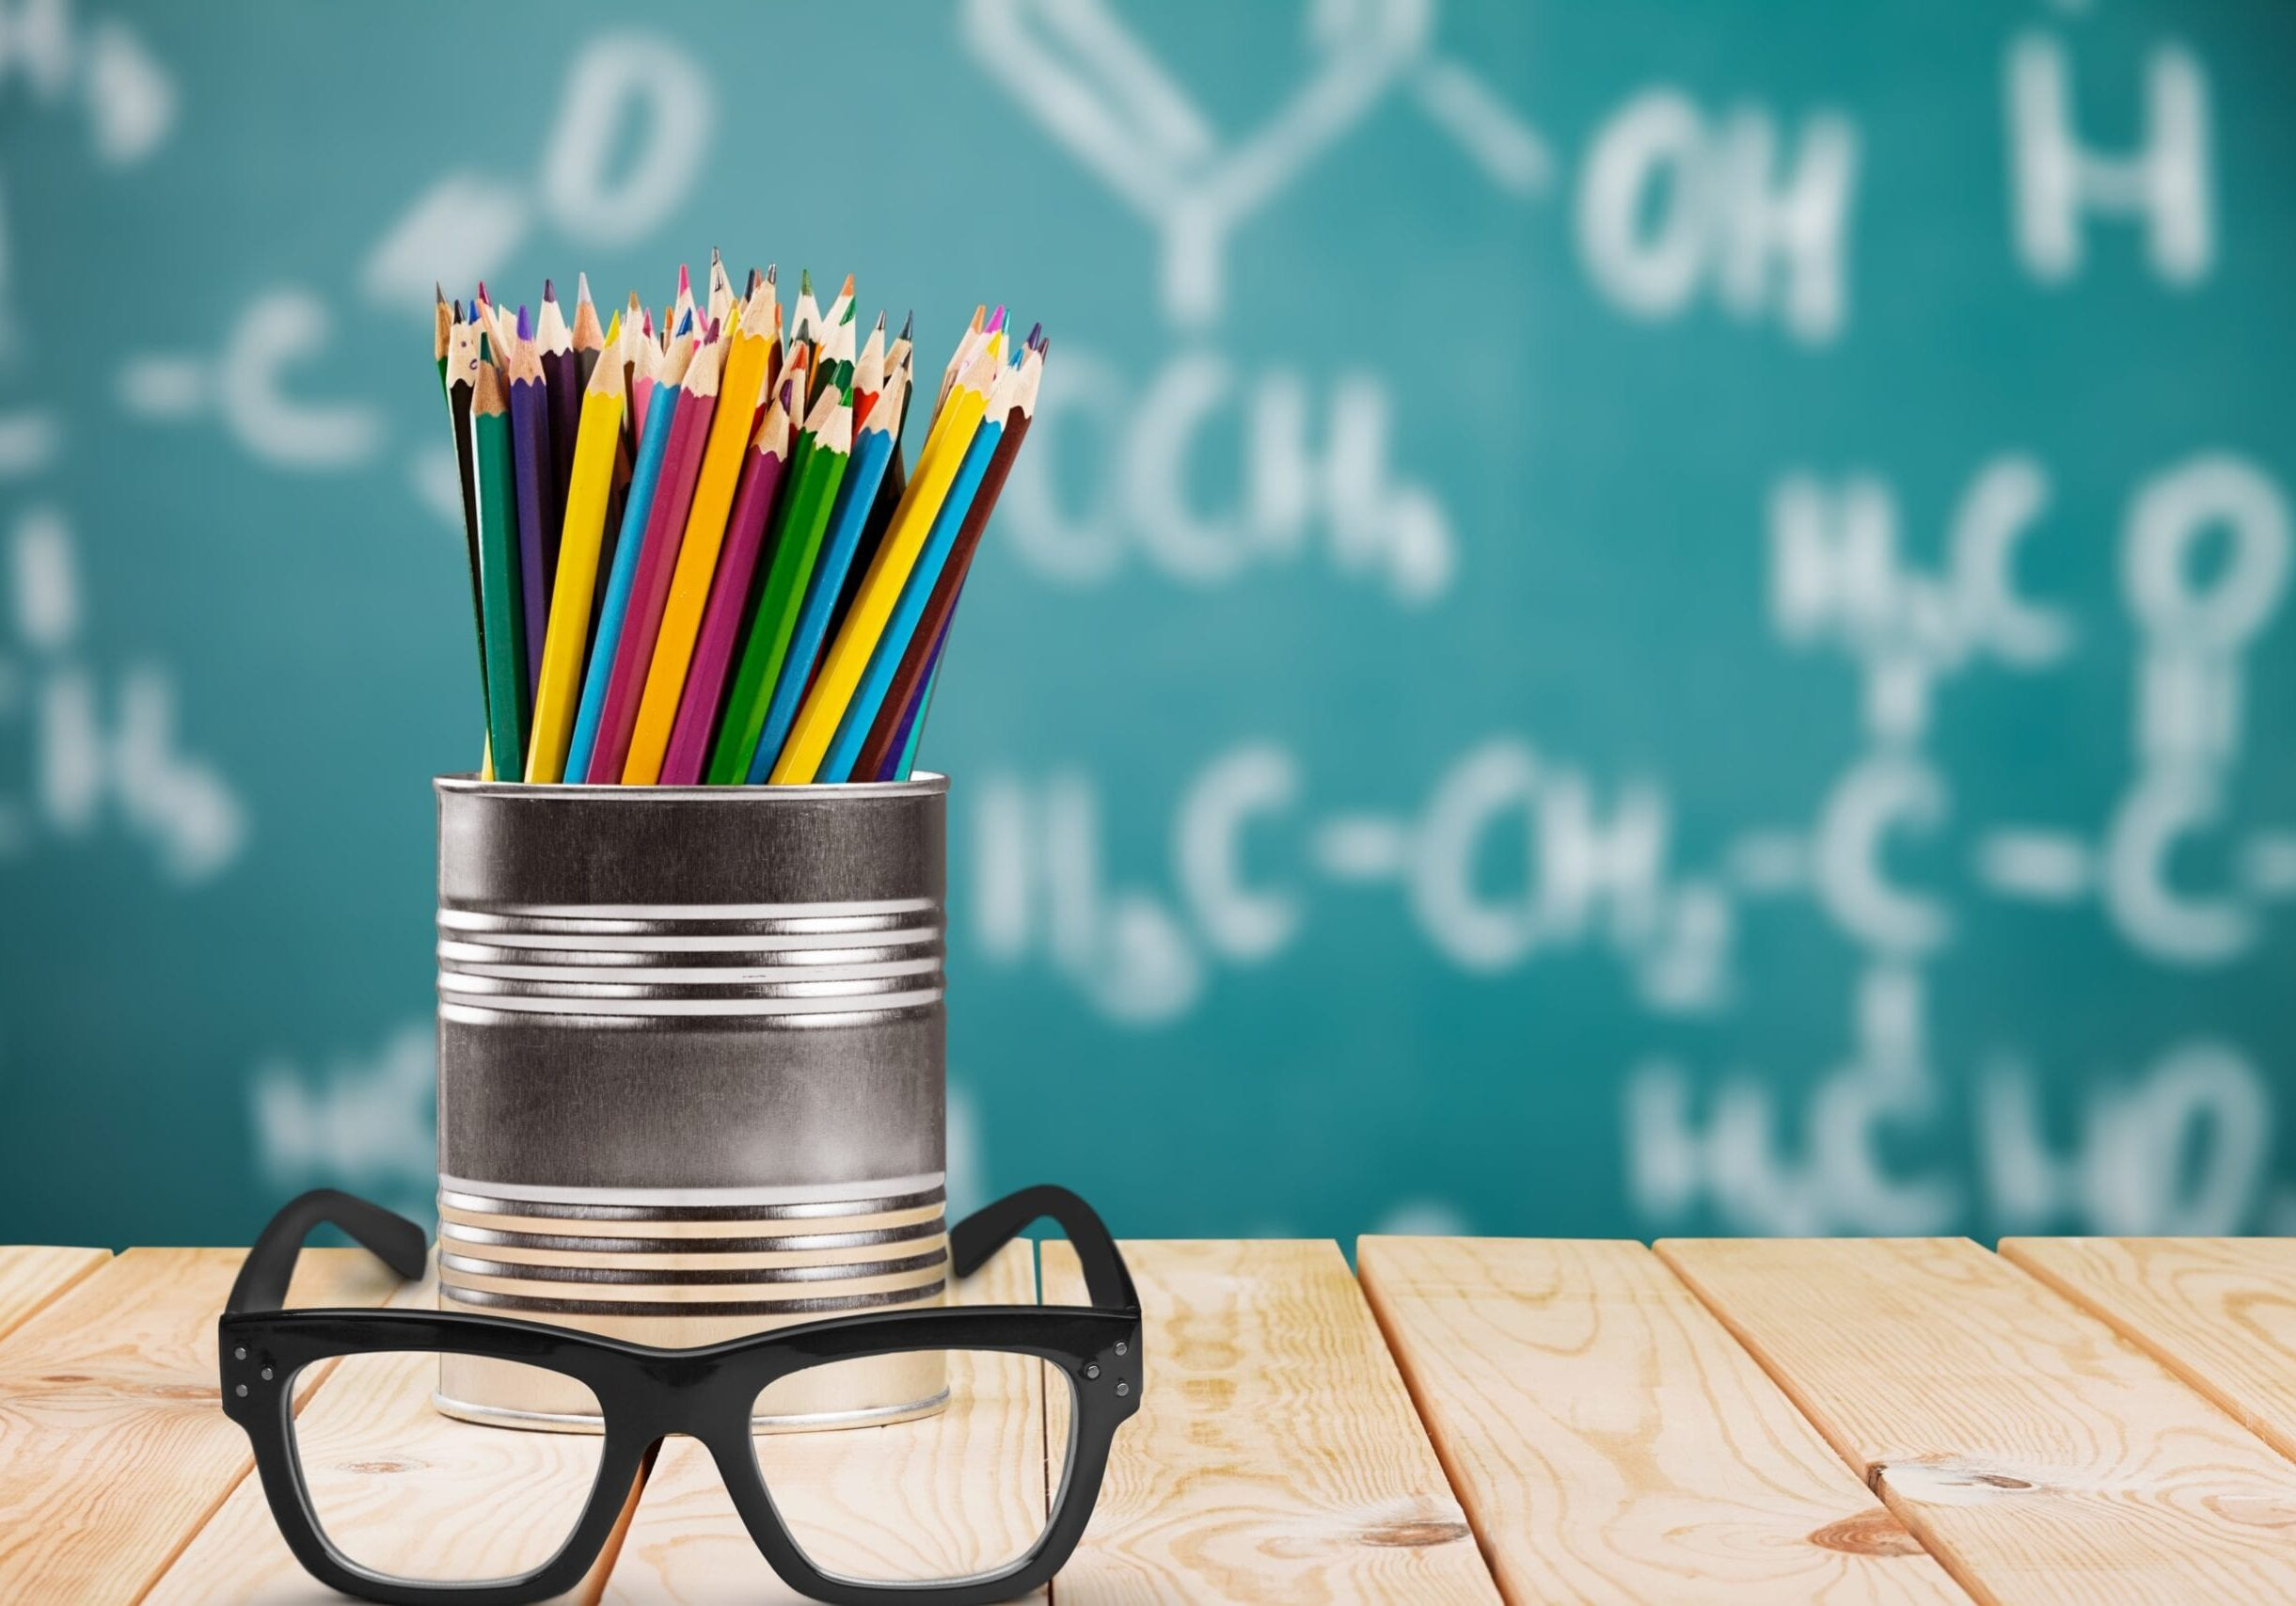 Classroom image: Pot of pencils and pair of glasses on desk in foreground with blackboard with writing on it blurred in background